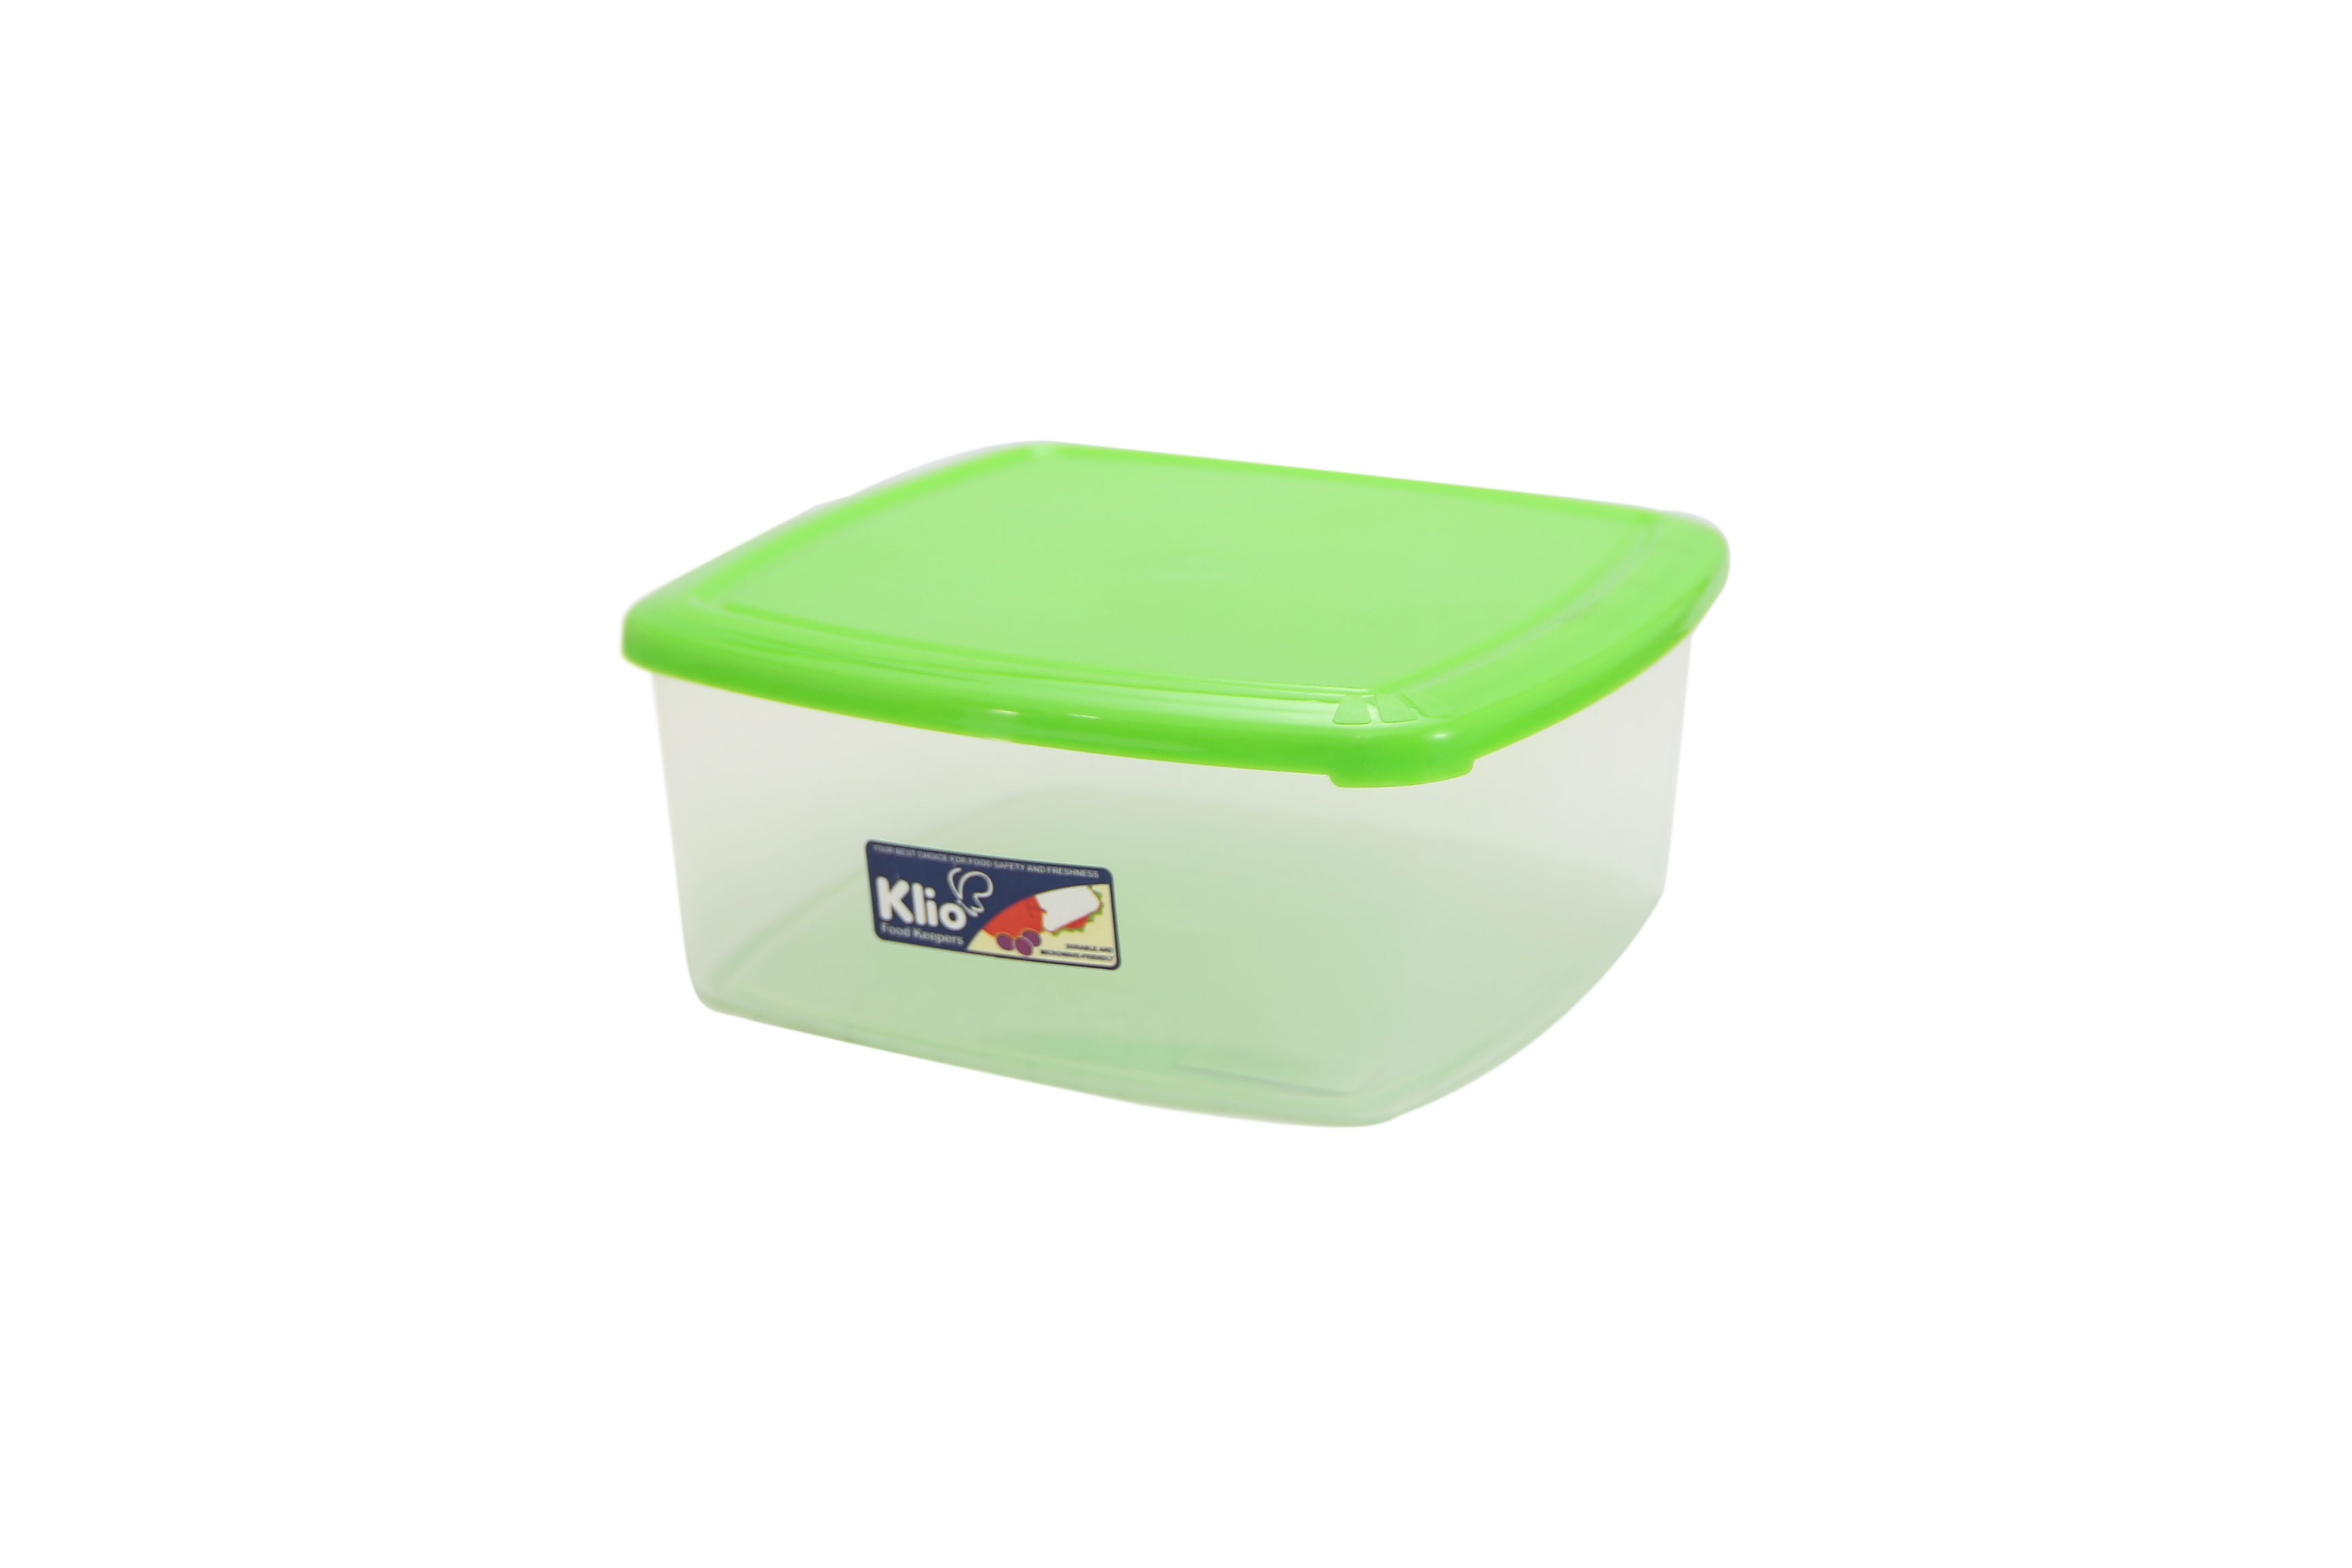 g-kl-sa04  sc 1 st  Klio Food Keepers & Thin Square Plastic Containers Large - Klio Food Keepers |